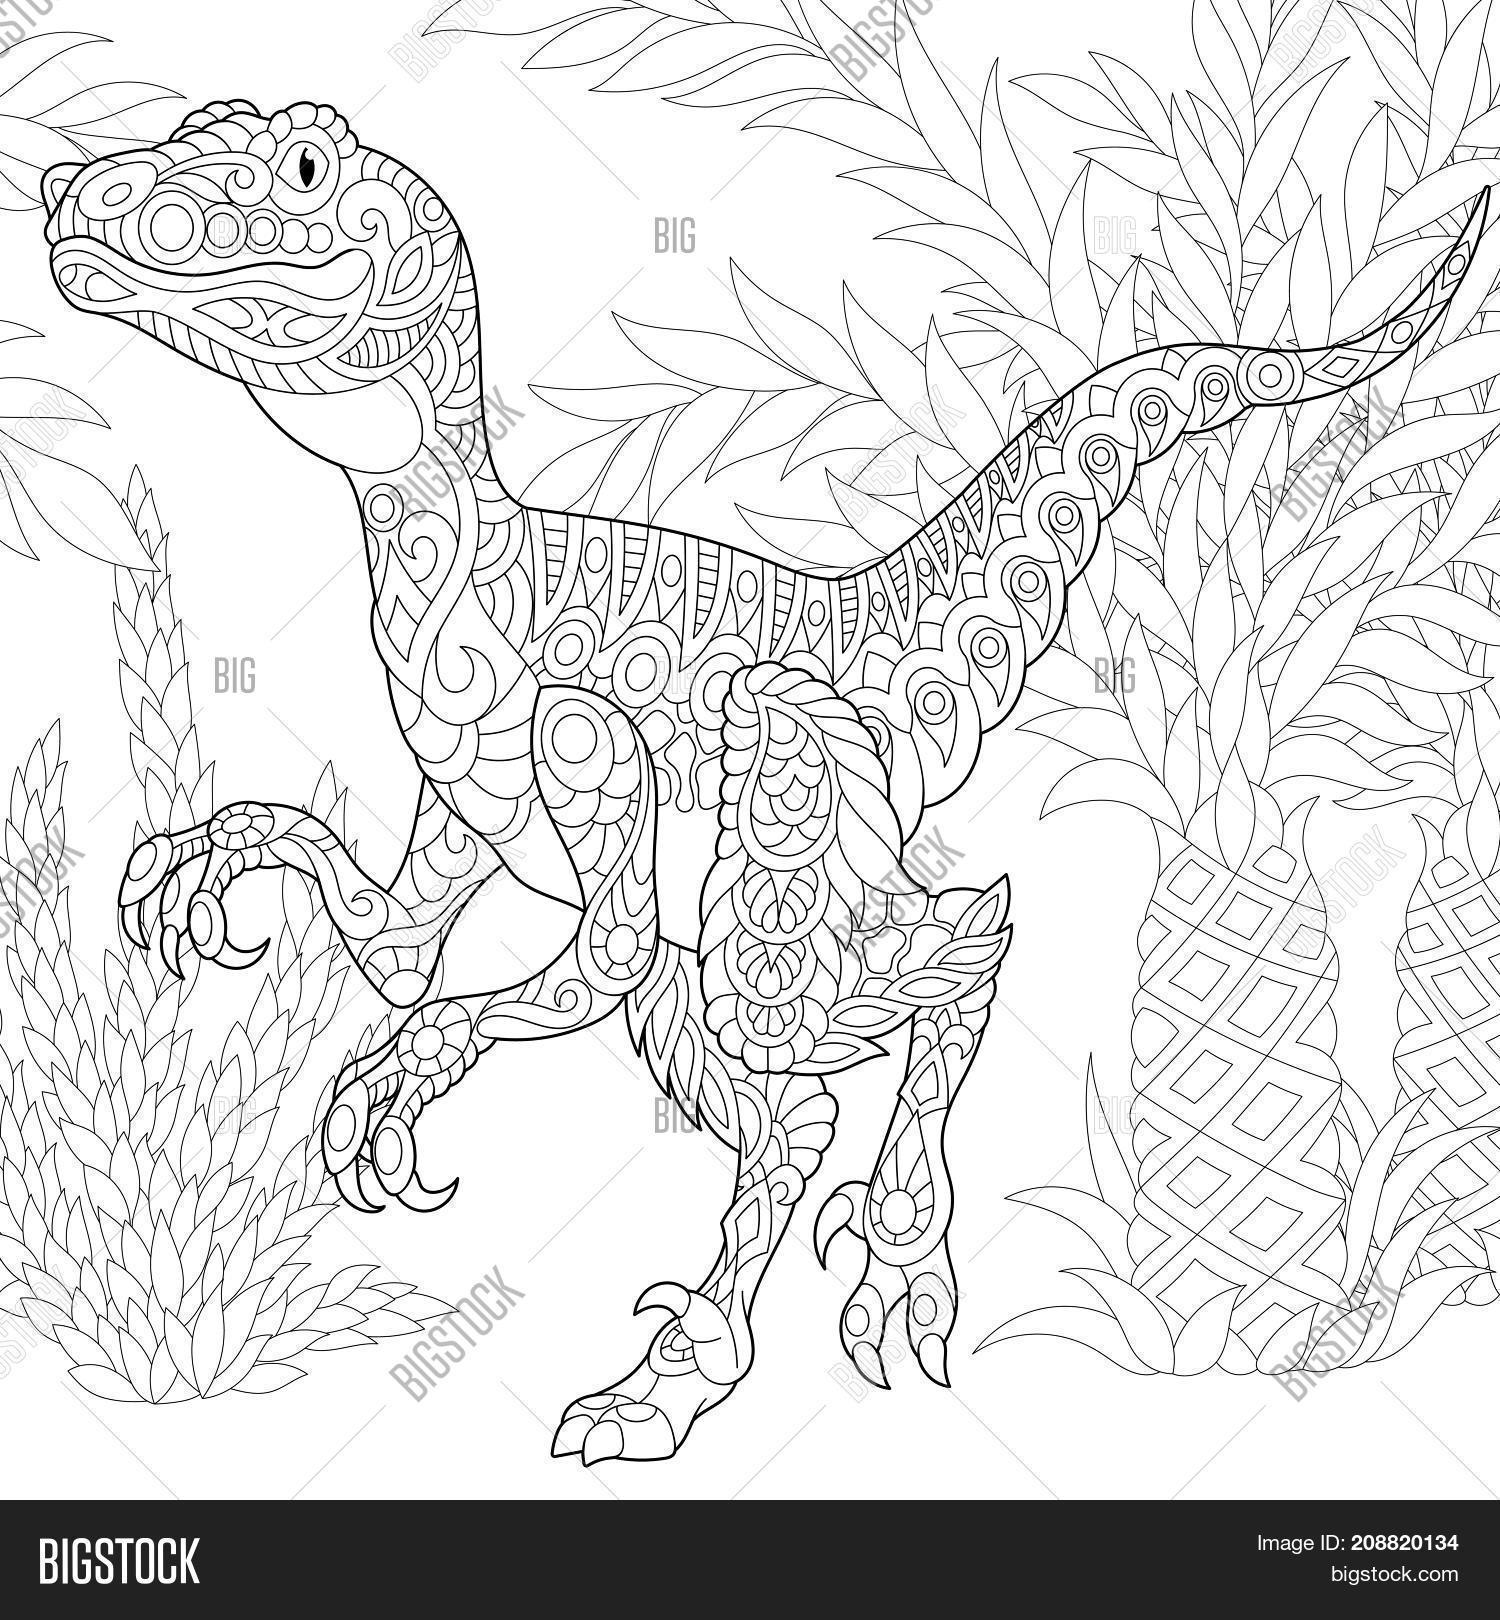 Coloring Page Image Photo Free Trial Bigstock